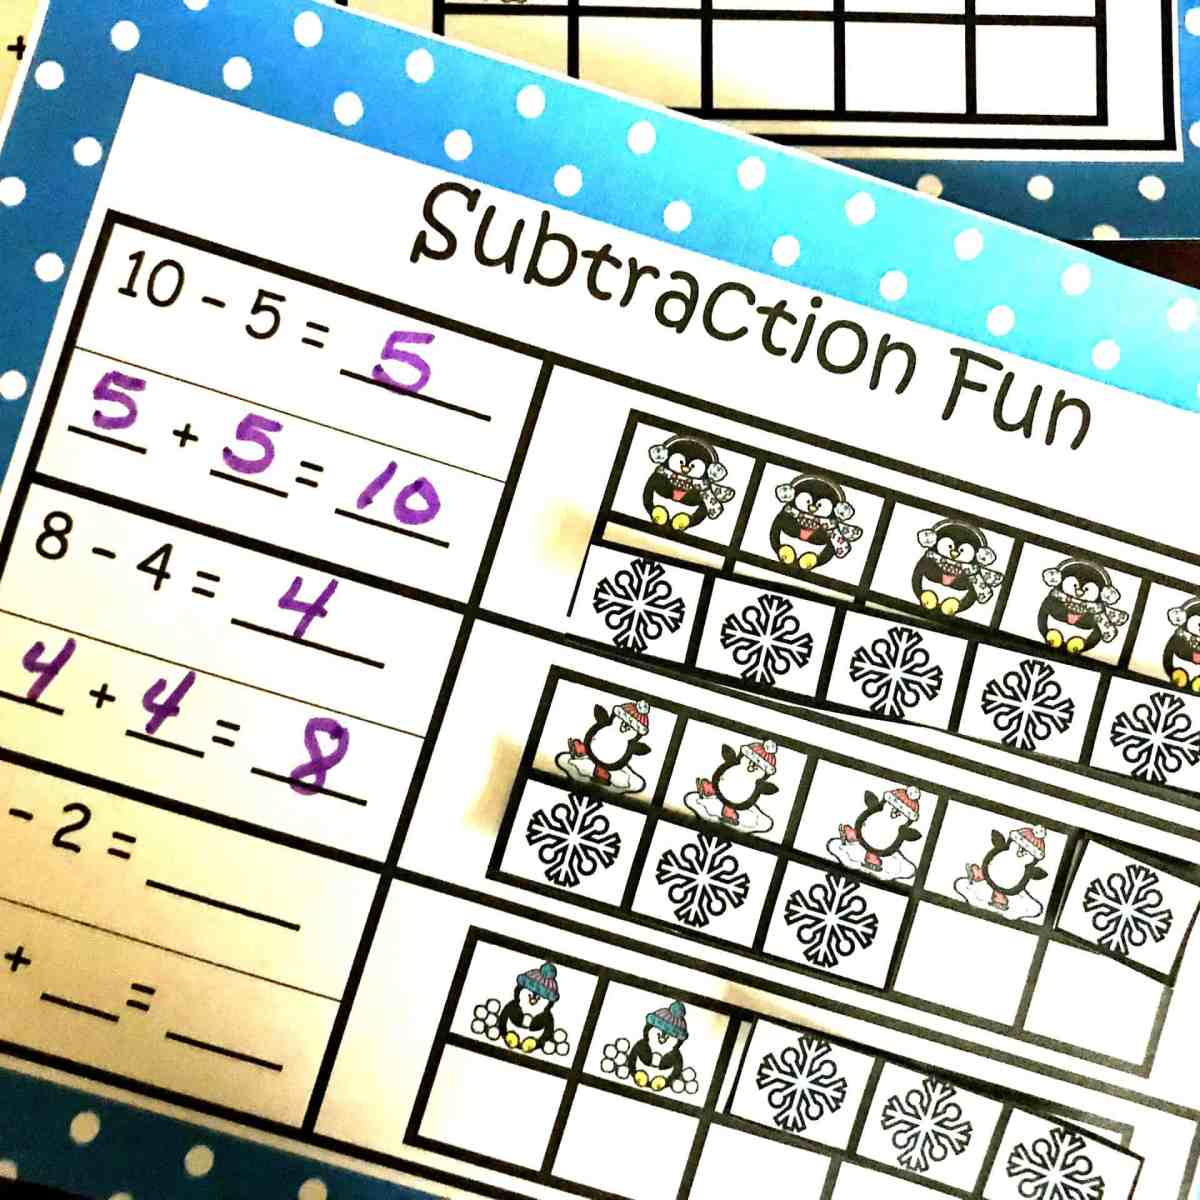 Find the Missing Addend in a Subtraction Problem Cut and Paste Activity